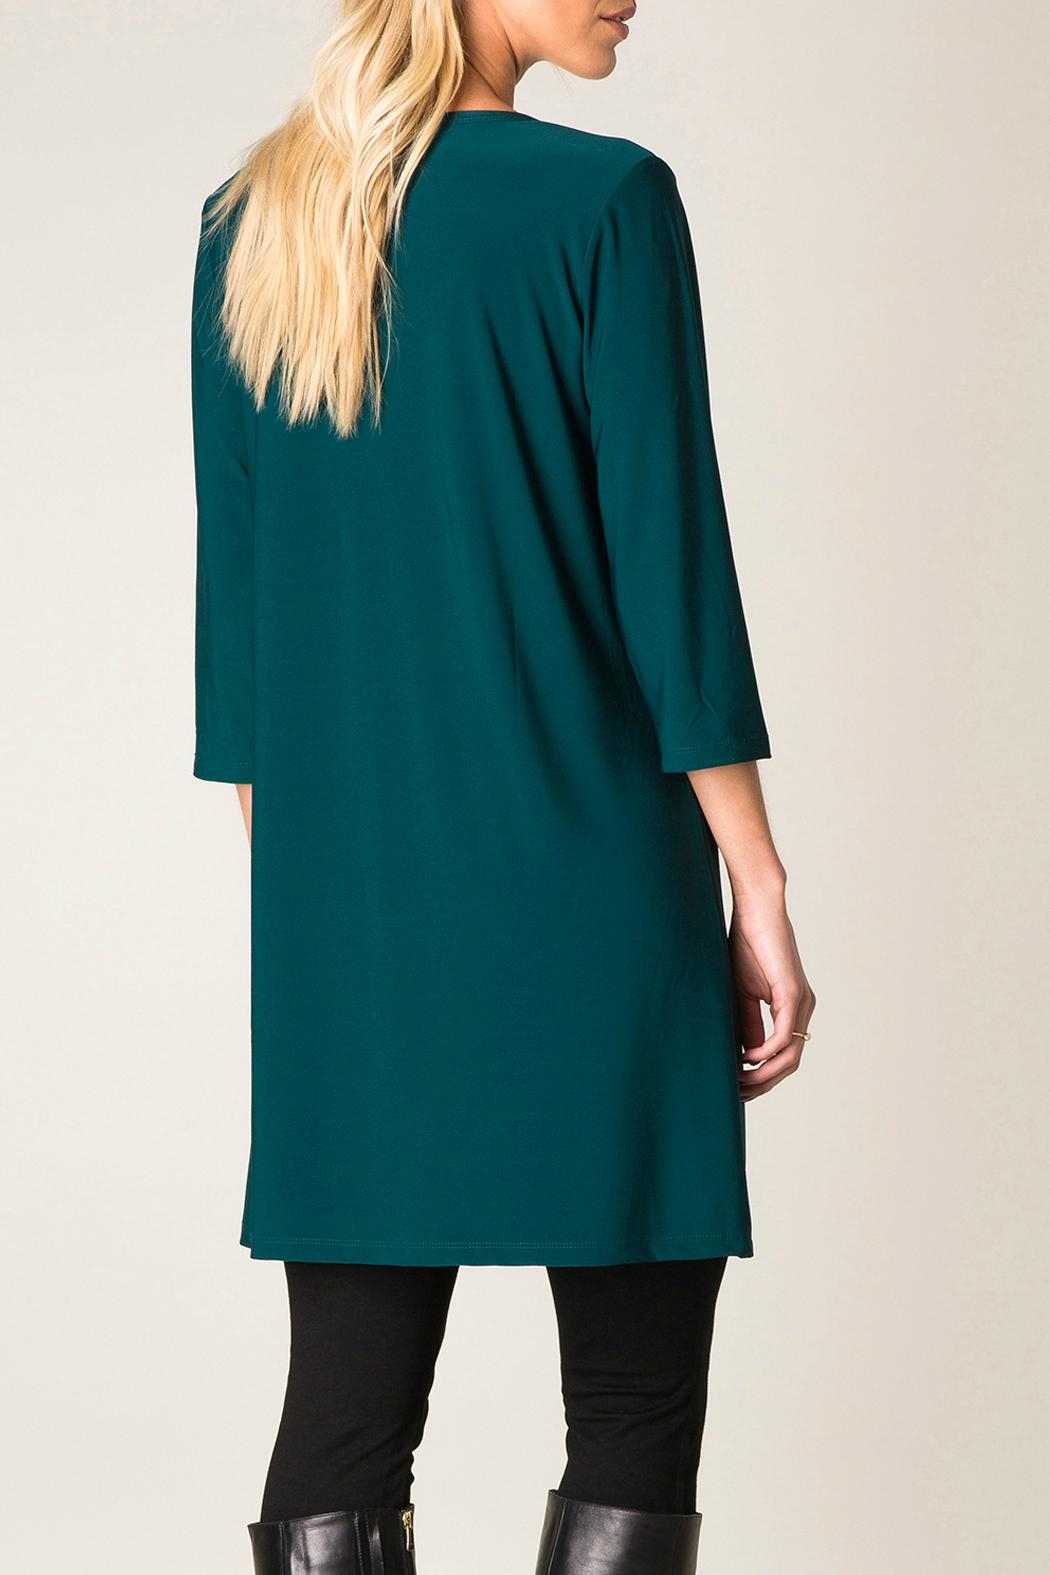 Colletta Teal Tunic - Front Full Image